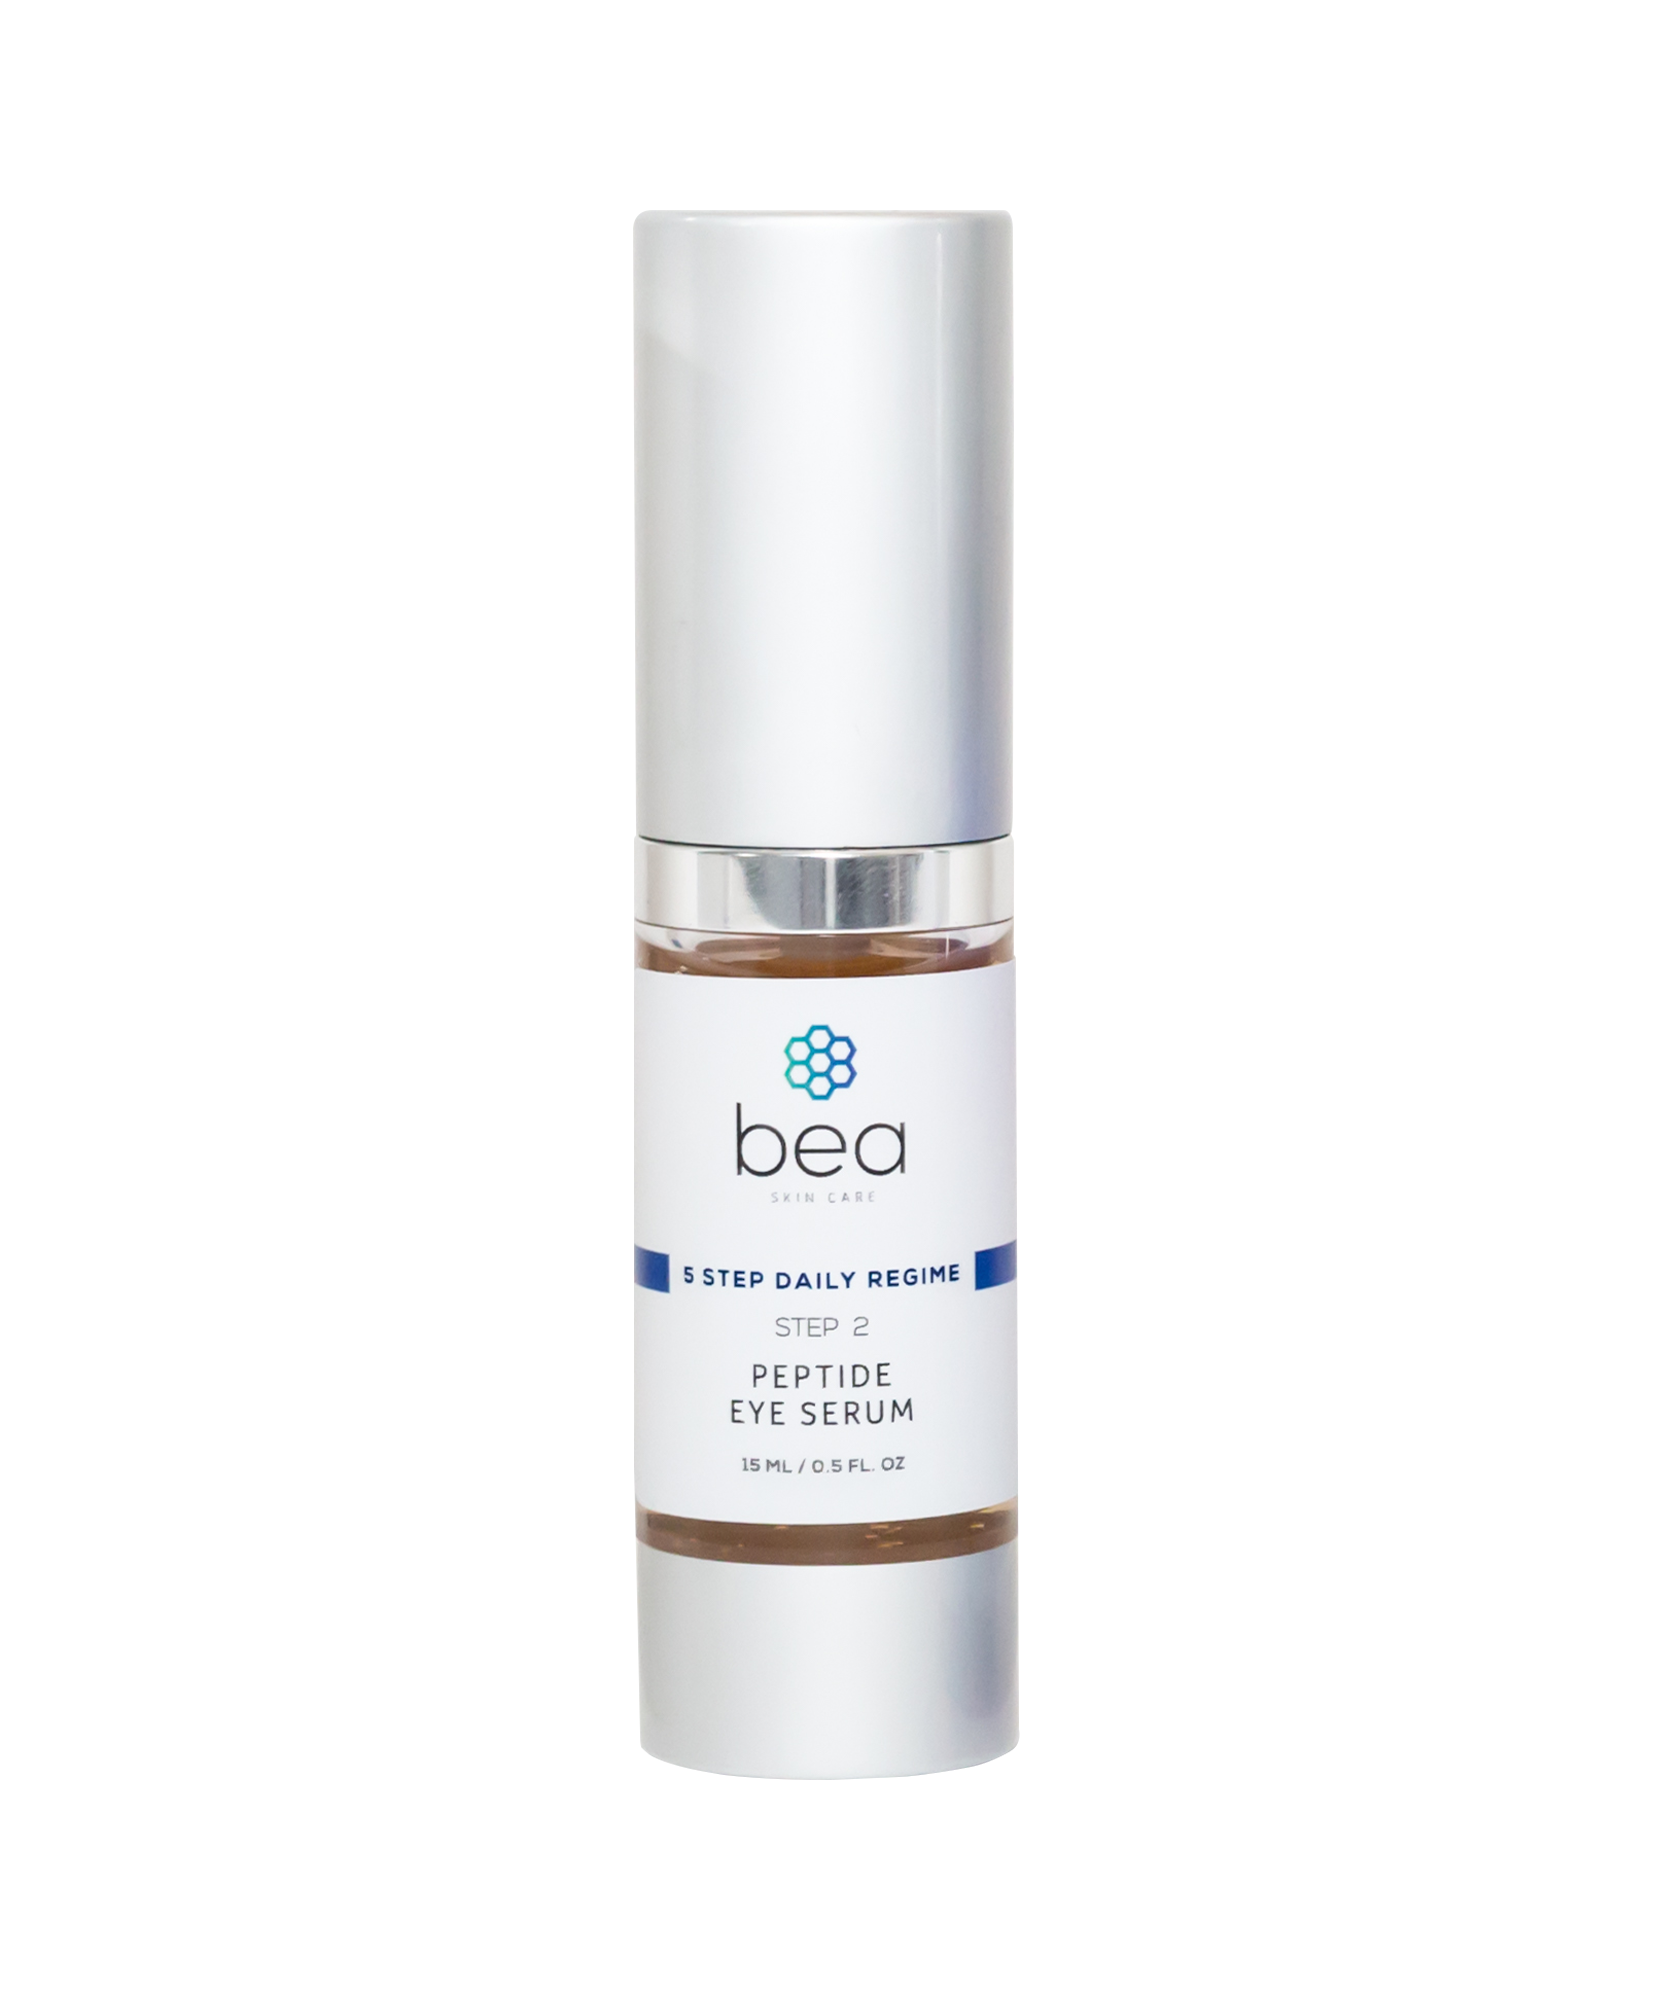 bea - Peptide Eye Serum £39